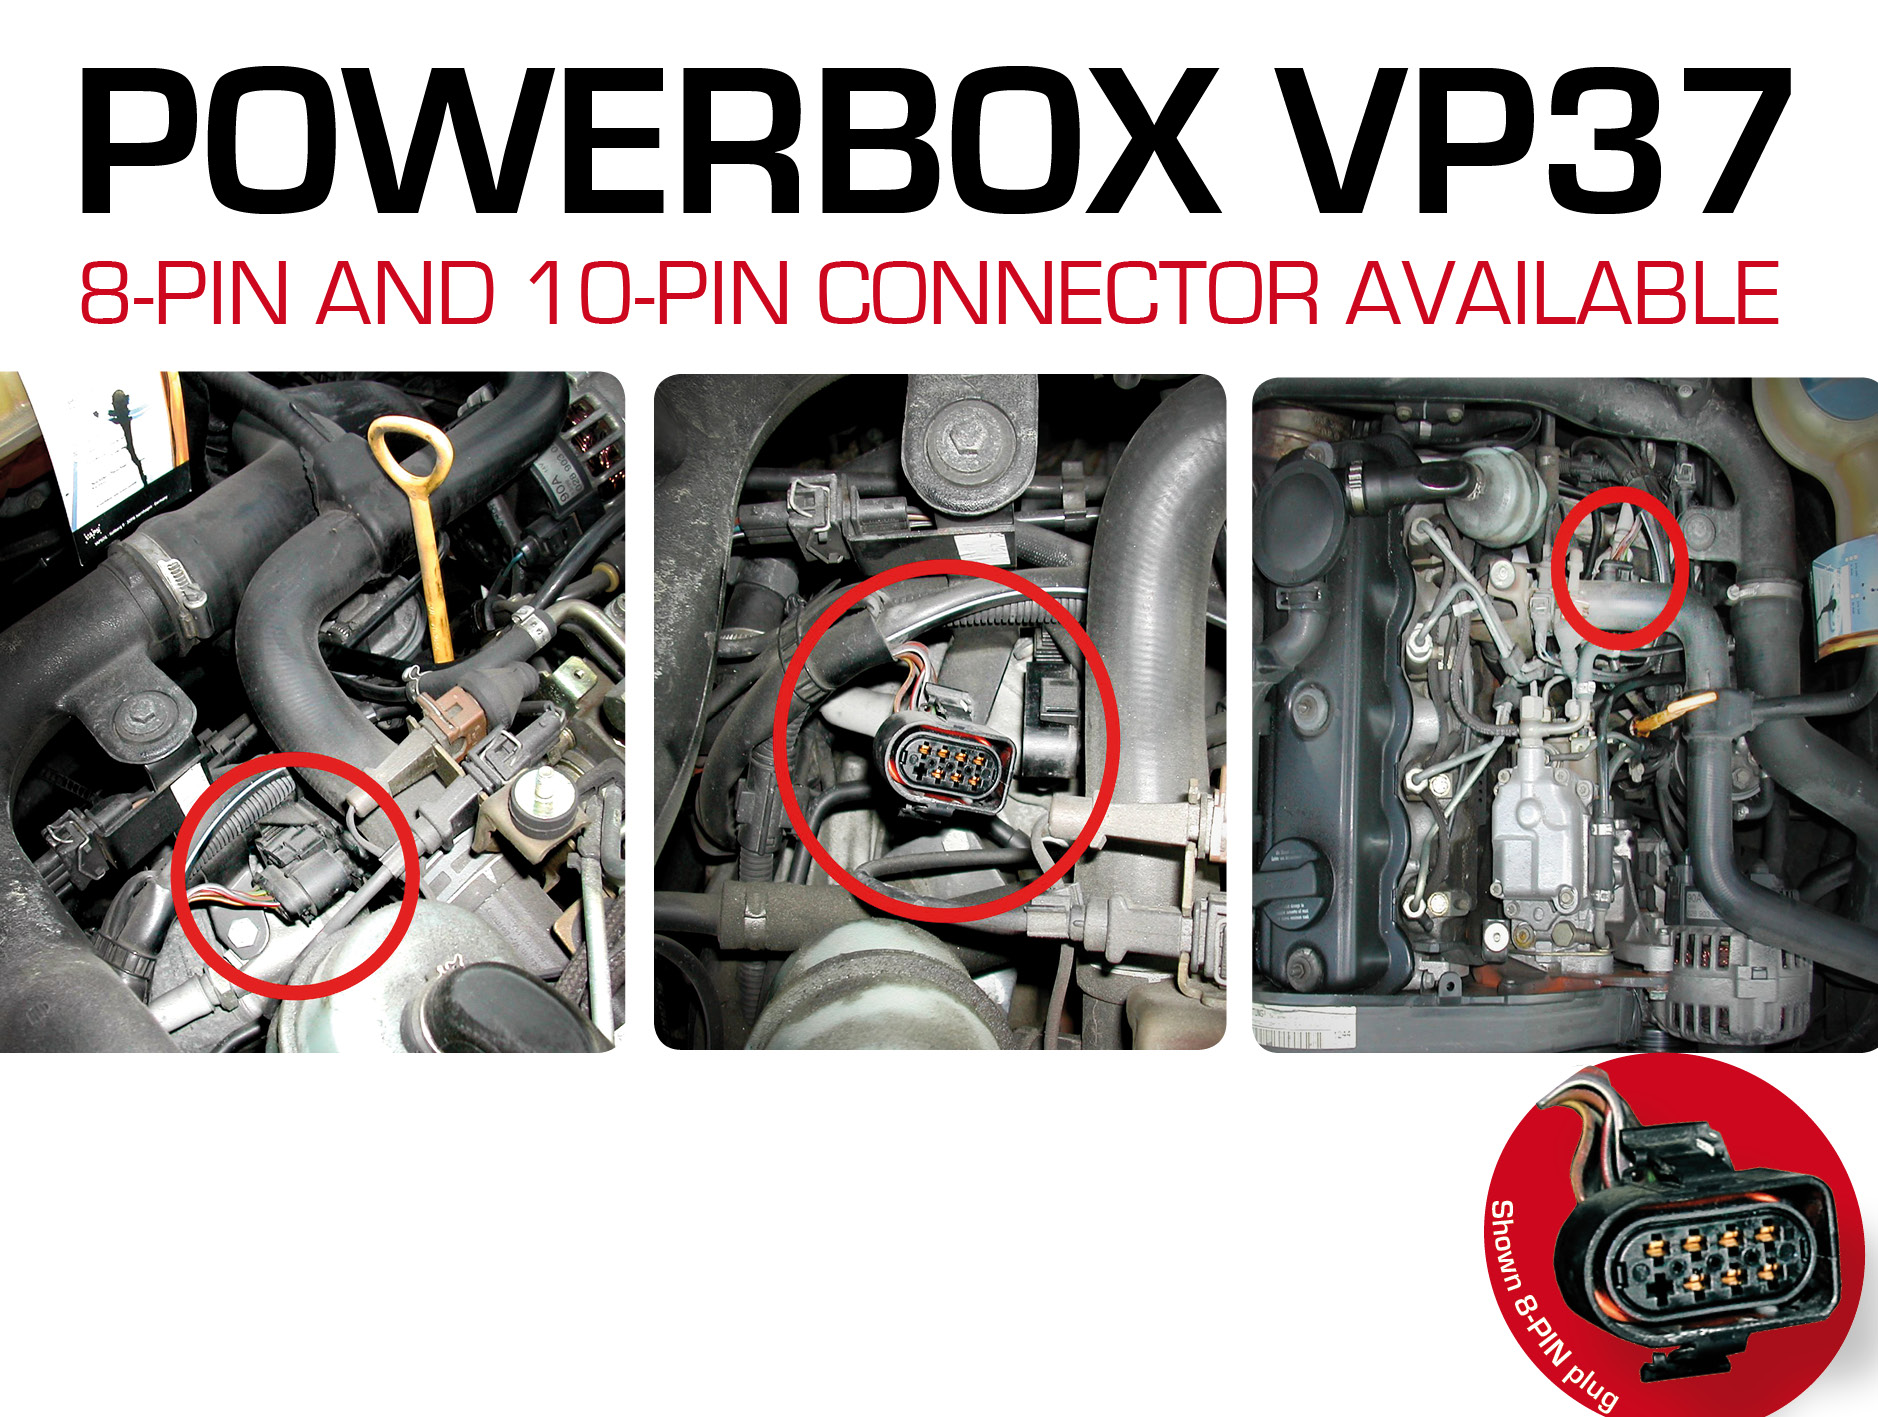 powerbox vp37 diesel chiptuning performance module for vw polo 1 9 sdi ebay. Black Bedroom Furniture Sets. Home Design Ideas